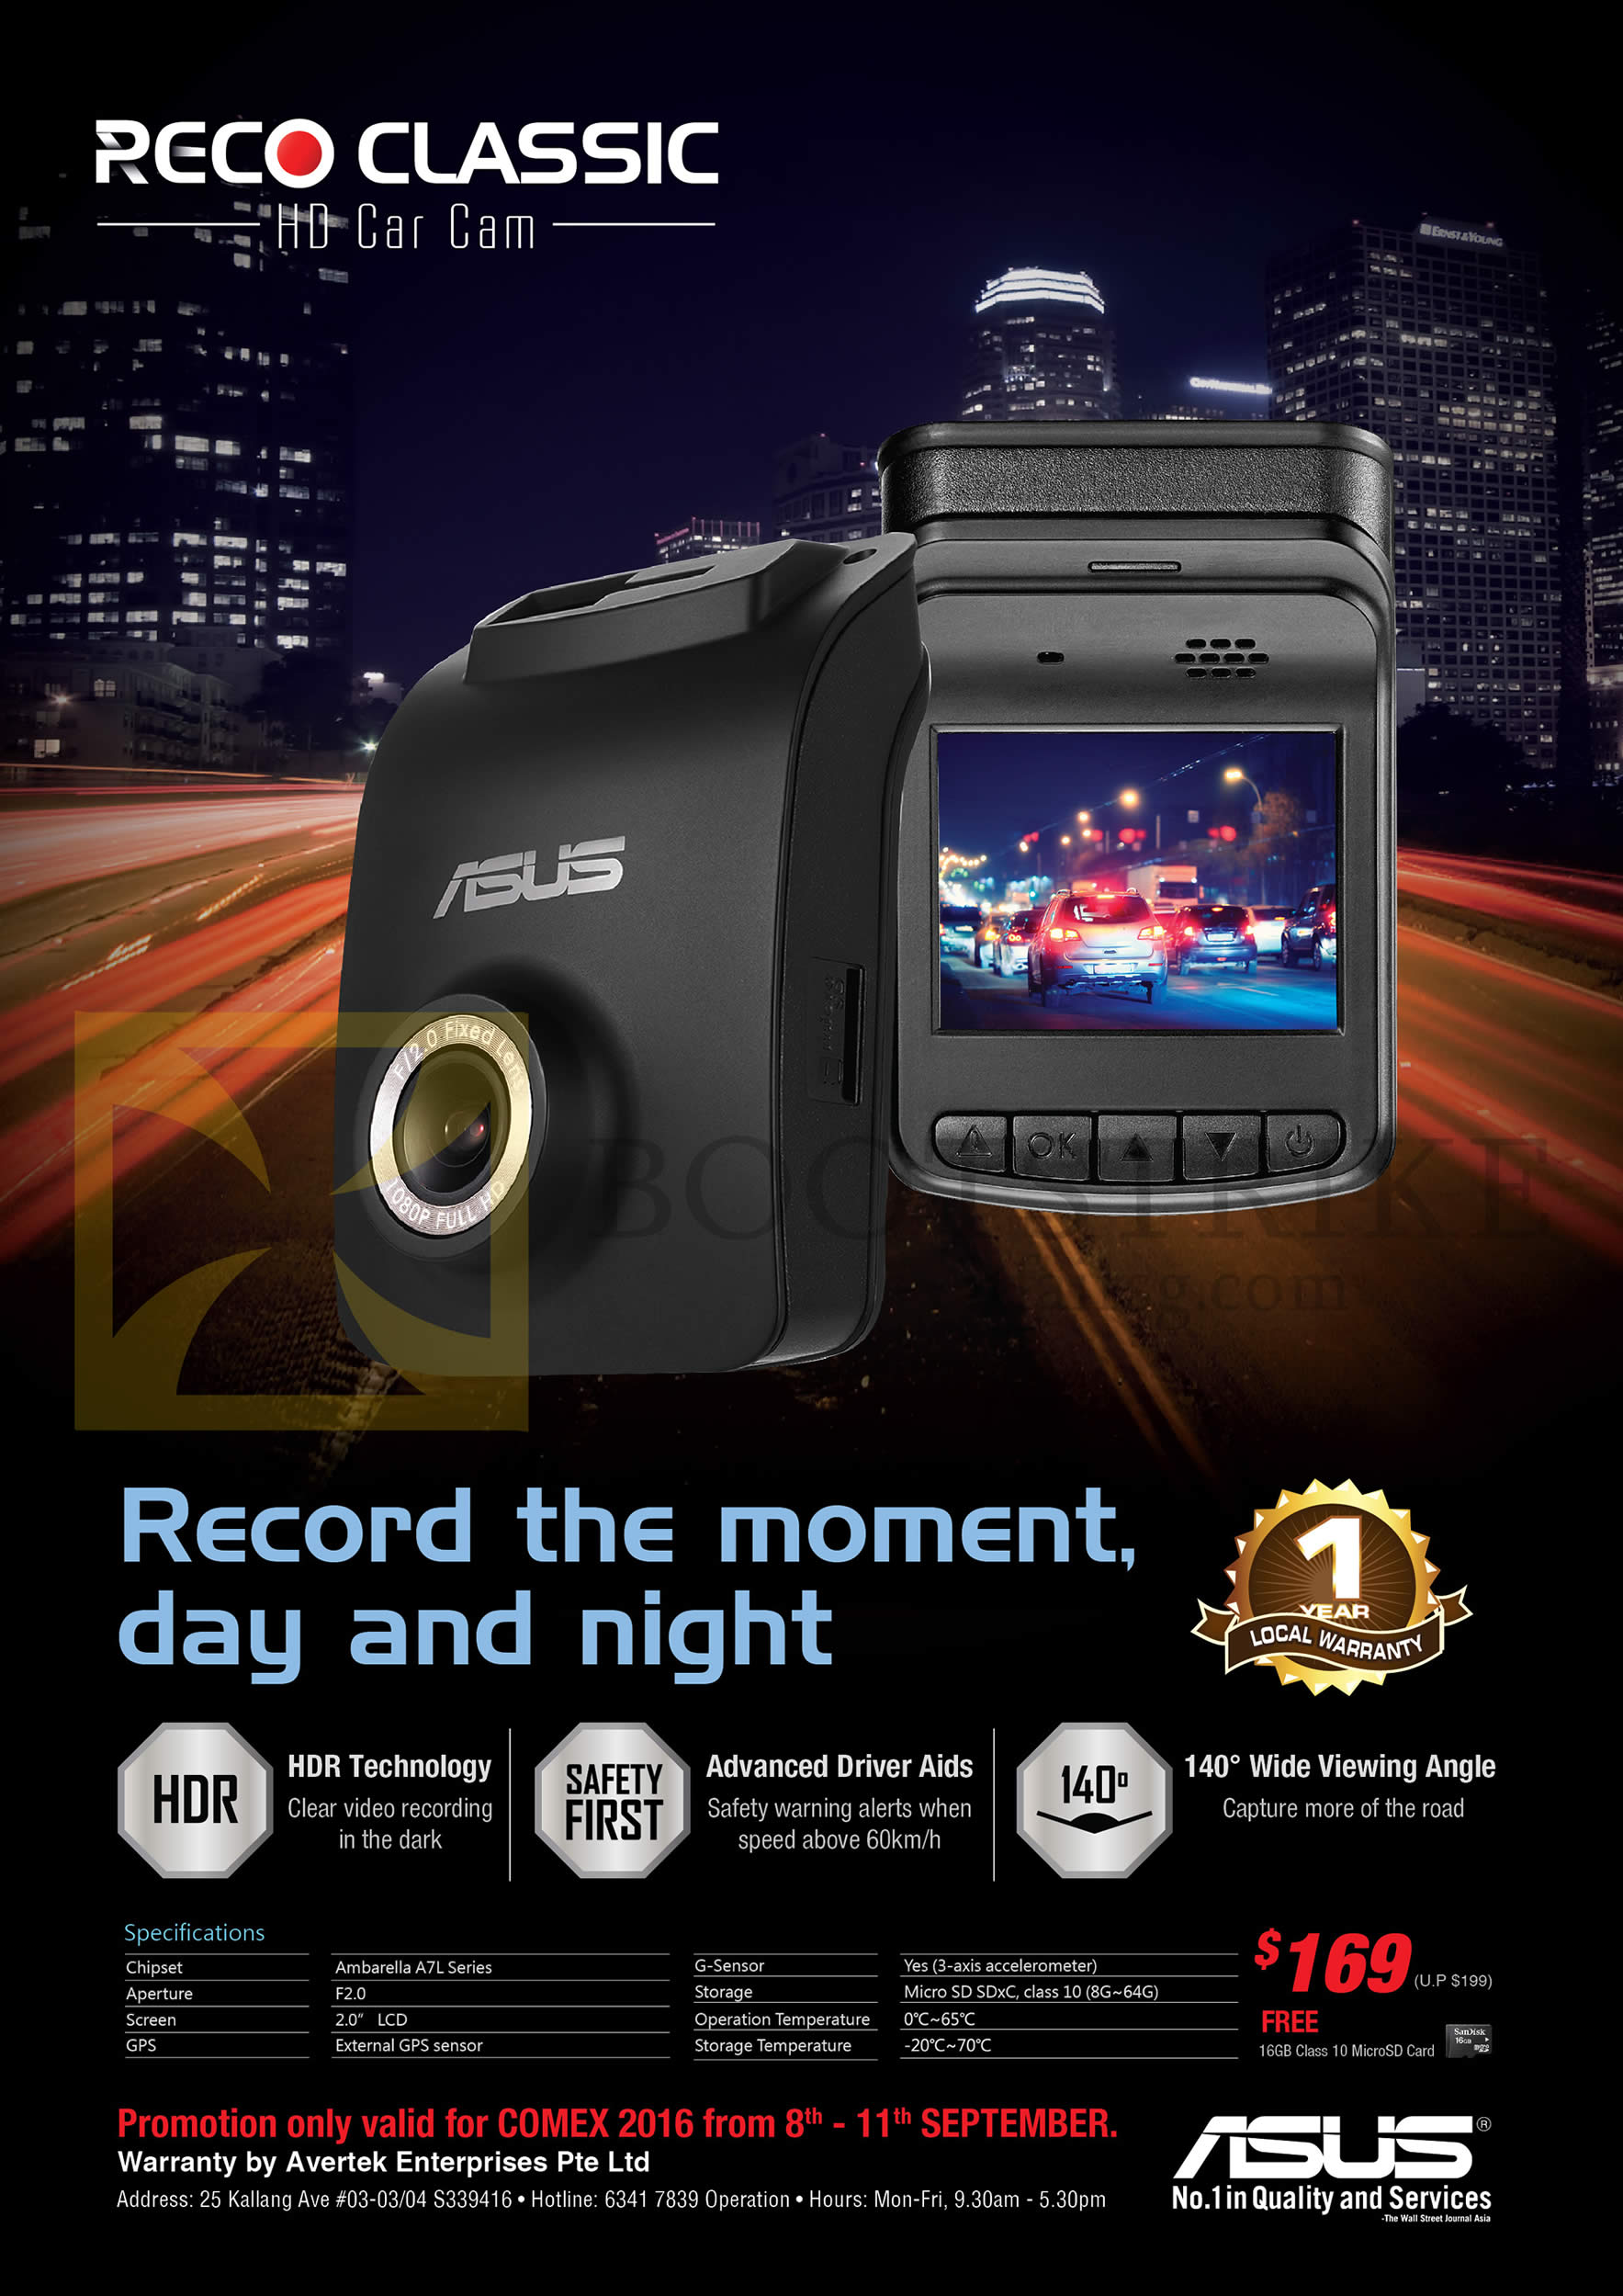 COMEX 2016 price list image brochure of ASUS Reco CAM Classic HD Car Cam